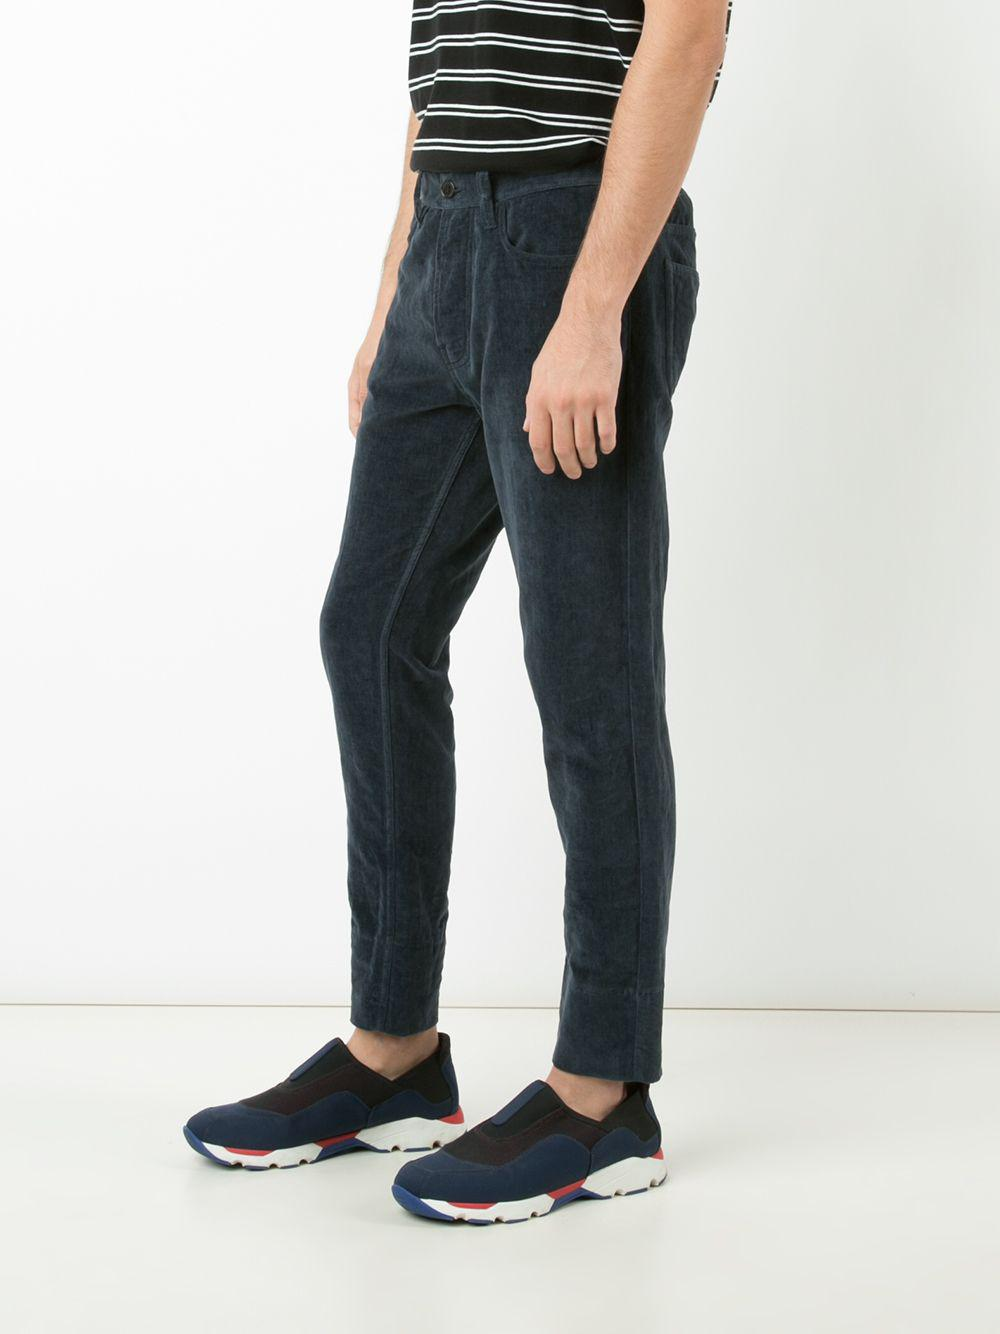 Marni Cotton Ribbed Trousers in Blue for Men